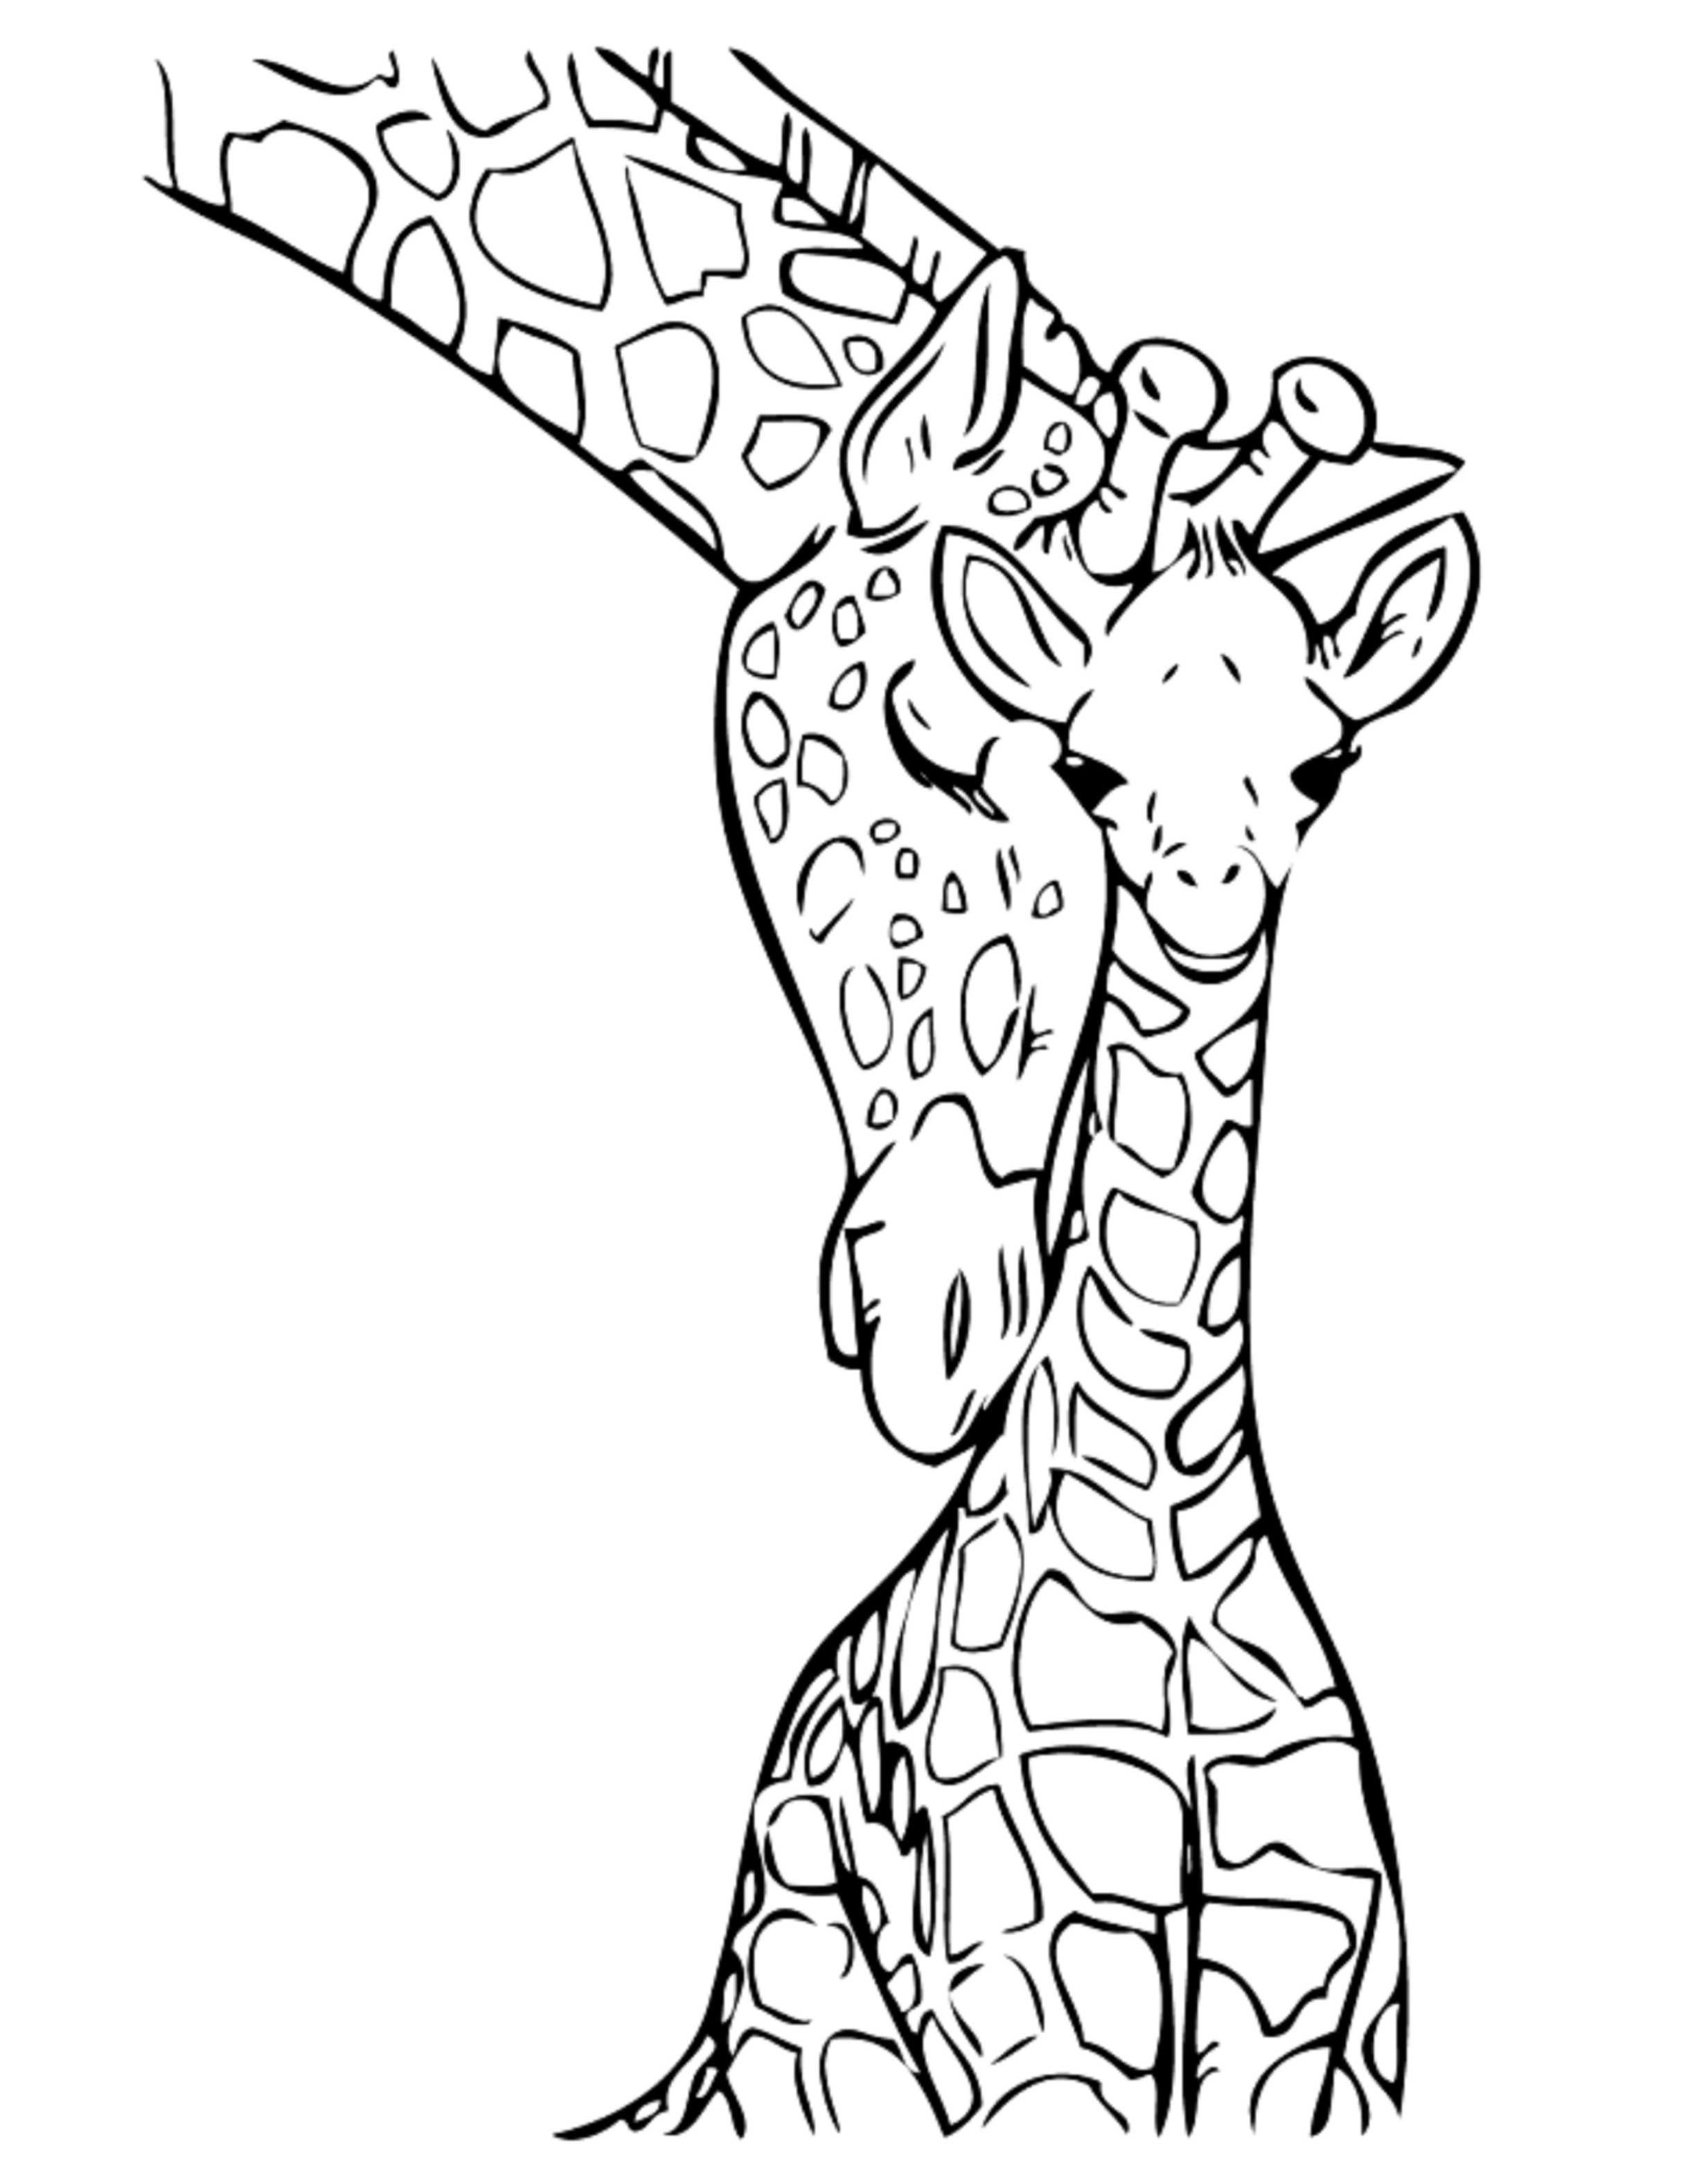 animal coloring pages for kids free printable farm animal coloring pages for kids kids for coloring pages animal